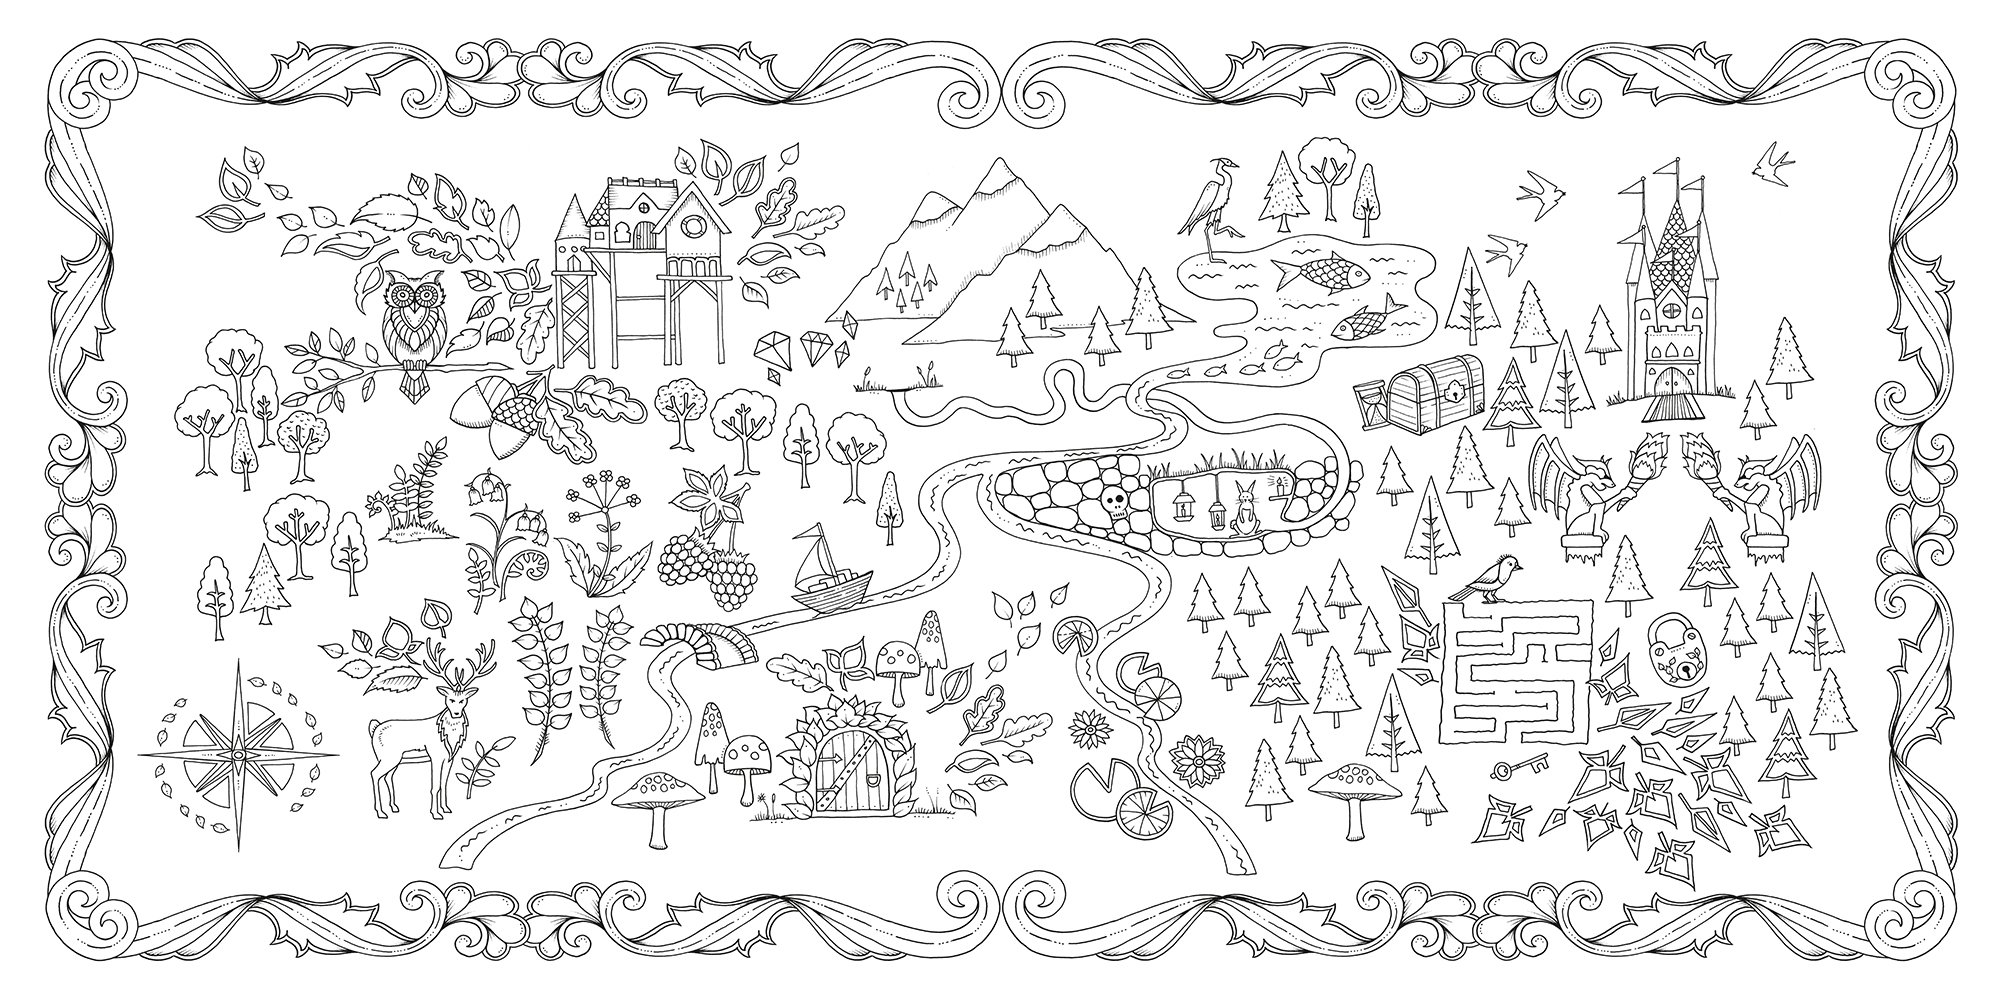 Colouring book secret garden - Buy Enchanted Forest An Inky Quest Coloring Book Book Online At Low Prices In India Enchanted Forest An Inky Quest Coloring Book Reviews Ratings